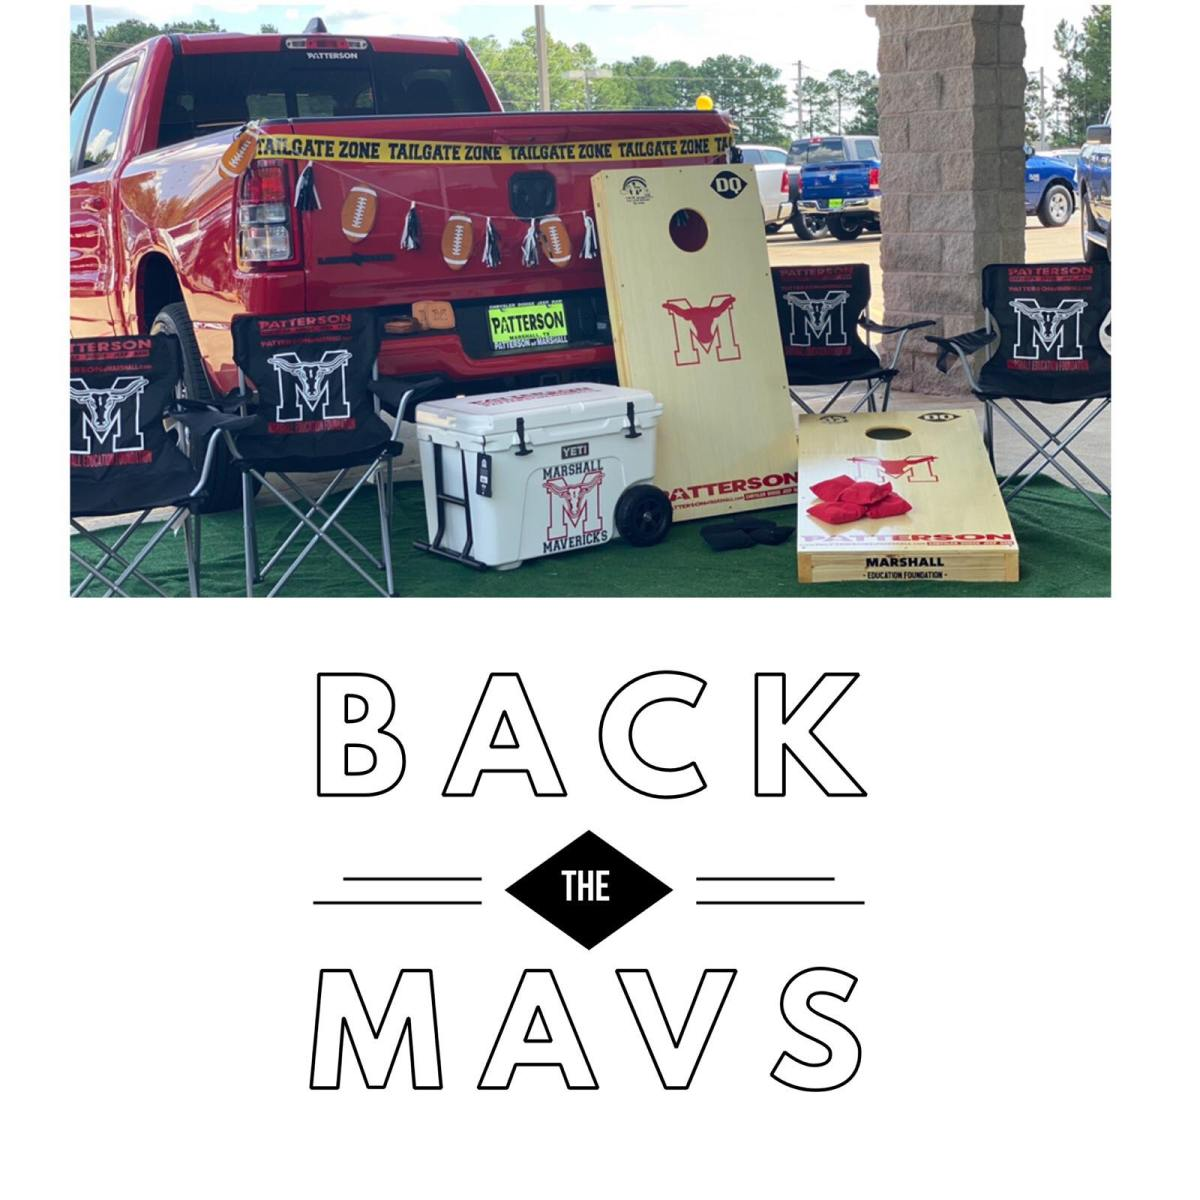 2019 - Back the Mavs Premium Tailgate Experience